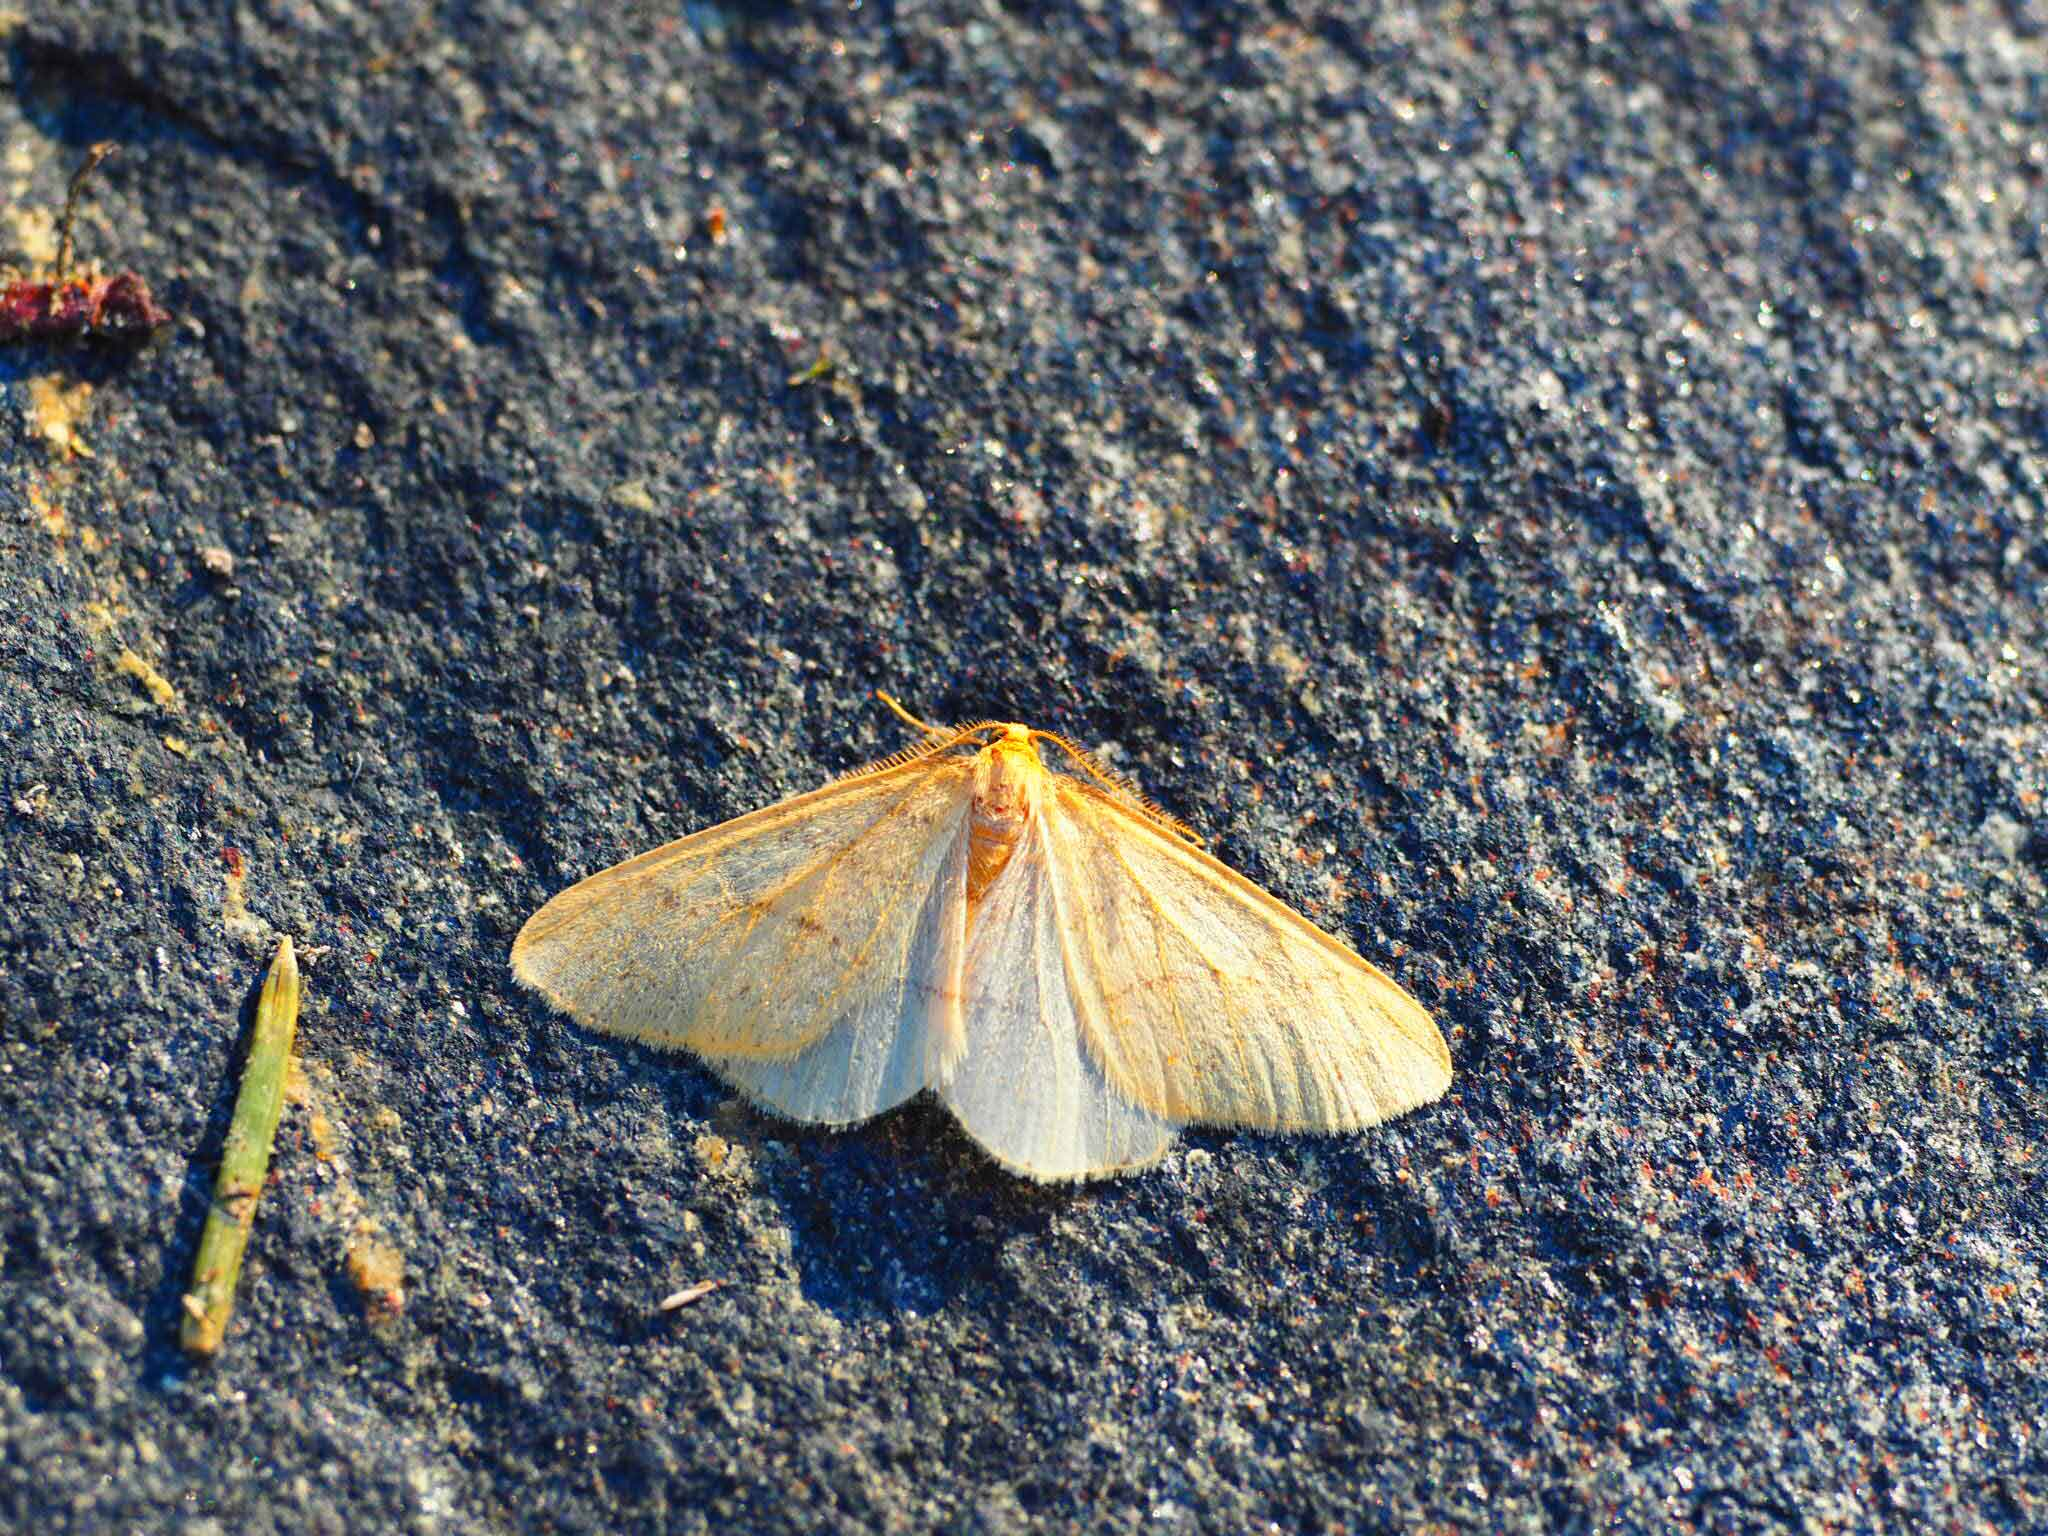 Photo: Jon Aars